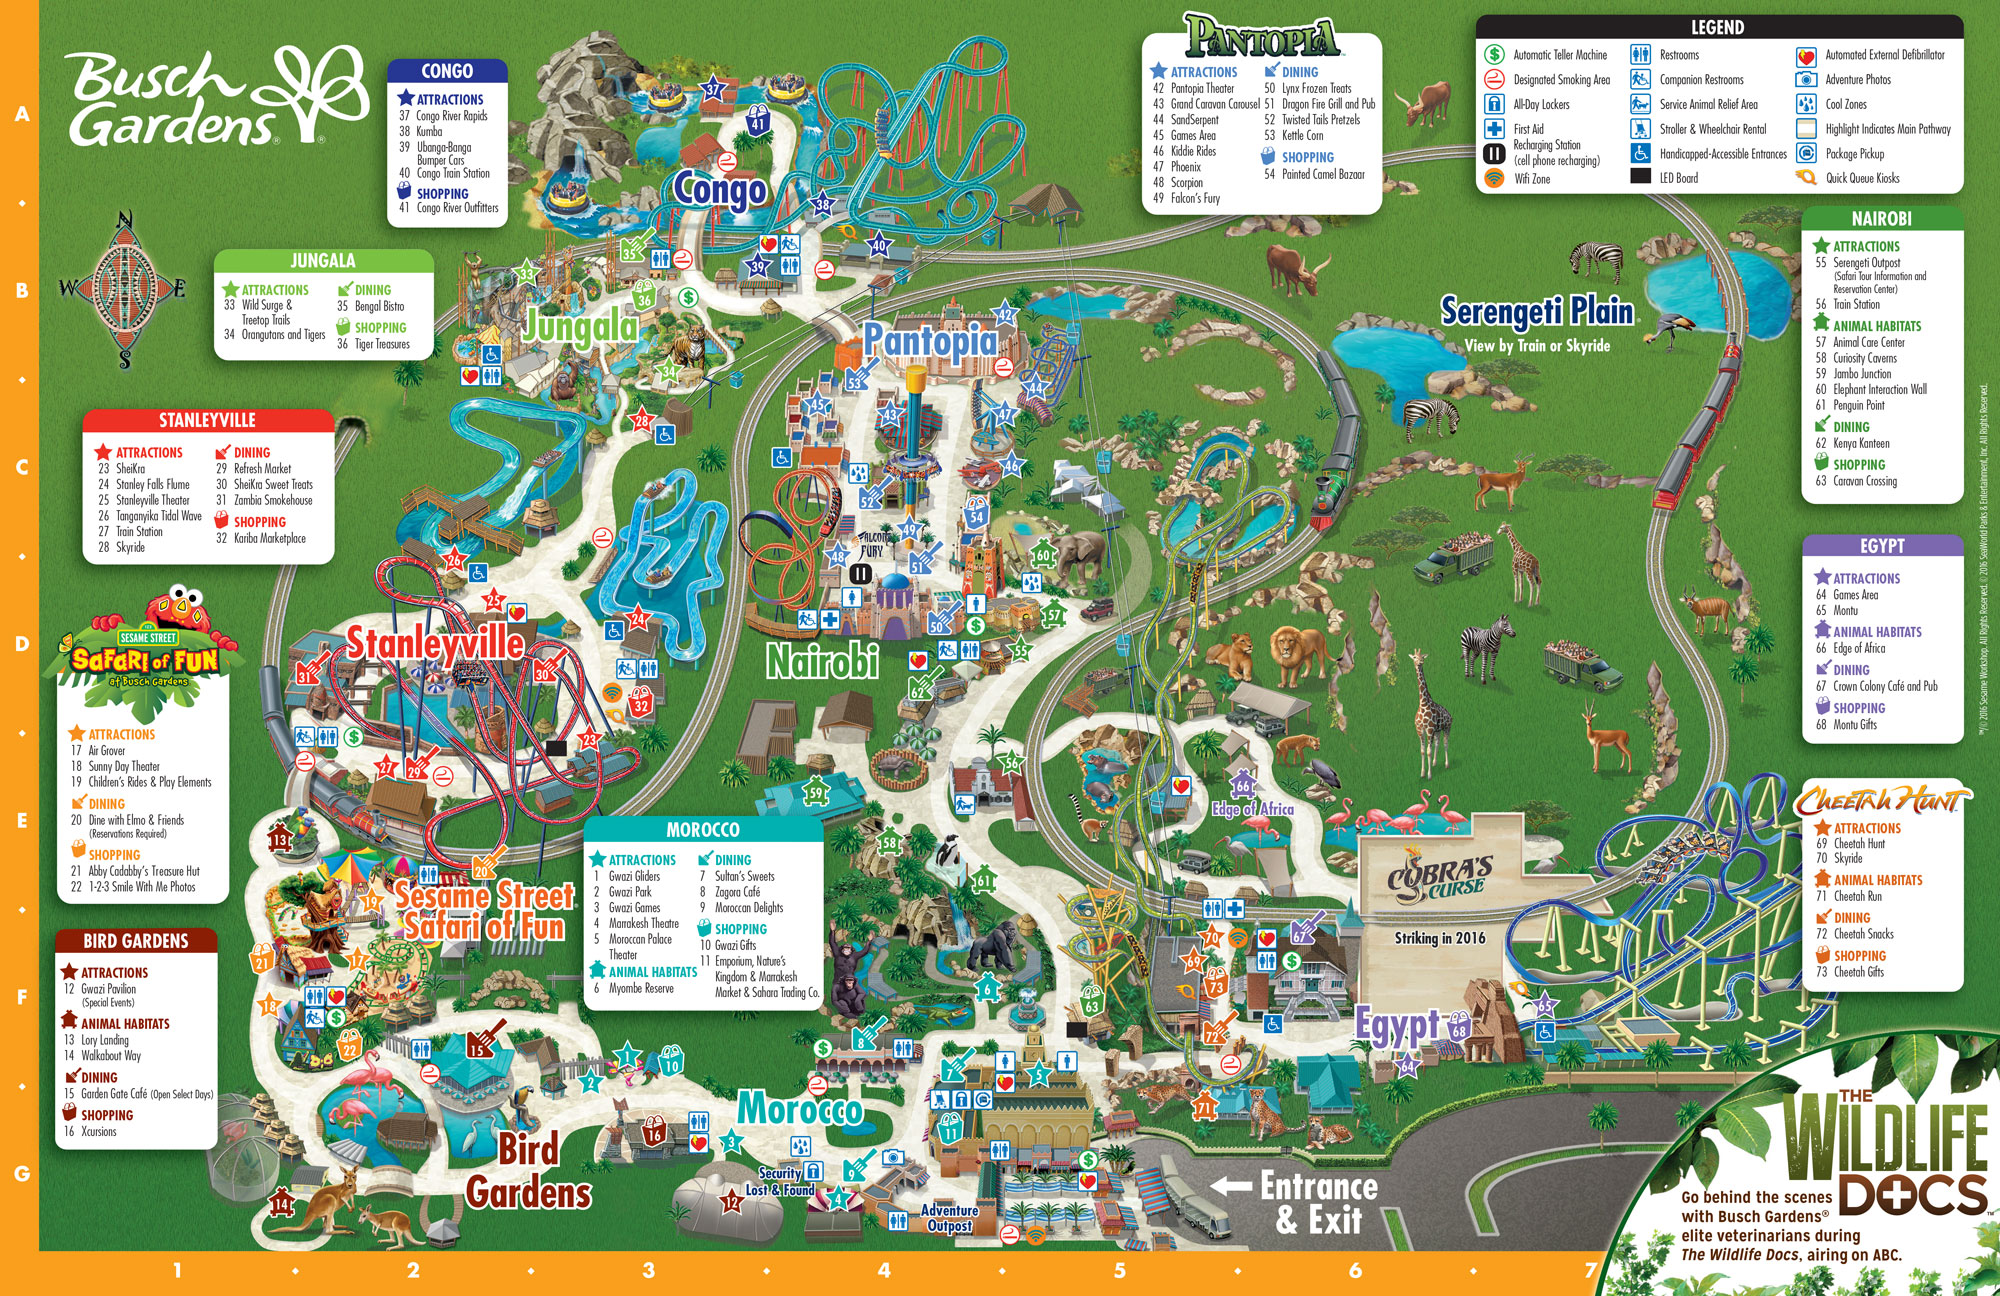 Terrific Park Map  Busch Gardens Tampa Bay With Remarkable Busch Gardens Tampa Mobile App  Put Busch Gardens In Your Pocket With Divine Apartments Covent Garden Also Dobbies Garden Ornaments In Addition Covent Garden Thai And Cambridge University Botanic Garden As Well As Knot Gardens Additionally Garden Lampost From Seaworldparkscom With   Remarkable Park Map  Busch Gardens Tampa Bay With Divine Busch Gardens Tampa Mobile App  Put Busch Gardens In Your Pocket And Terrific Apartments Covent Garden Also Dobbies Garden Ornaments In Addition Covent Garden Thai From Seaworldparkscom